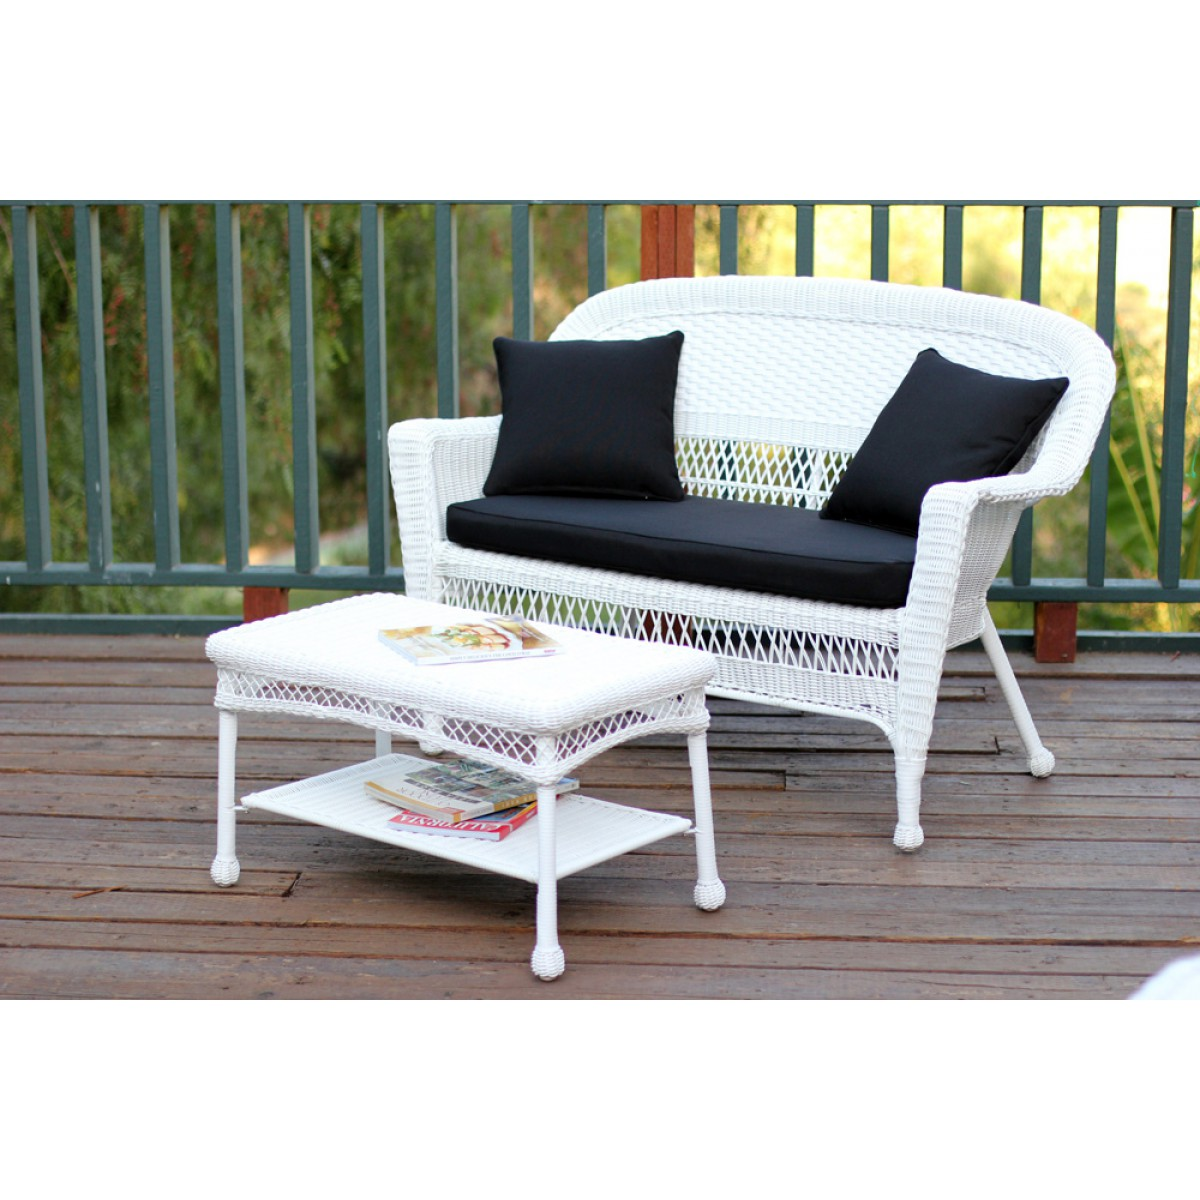 Honey Wicker Patio Love Seat And Coffee Table Set With Orange Cushion